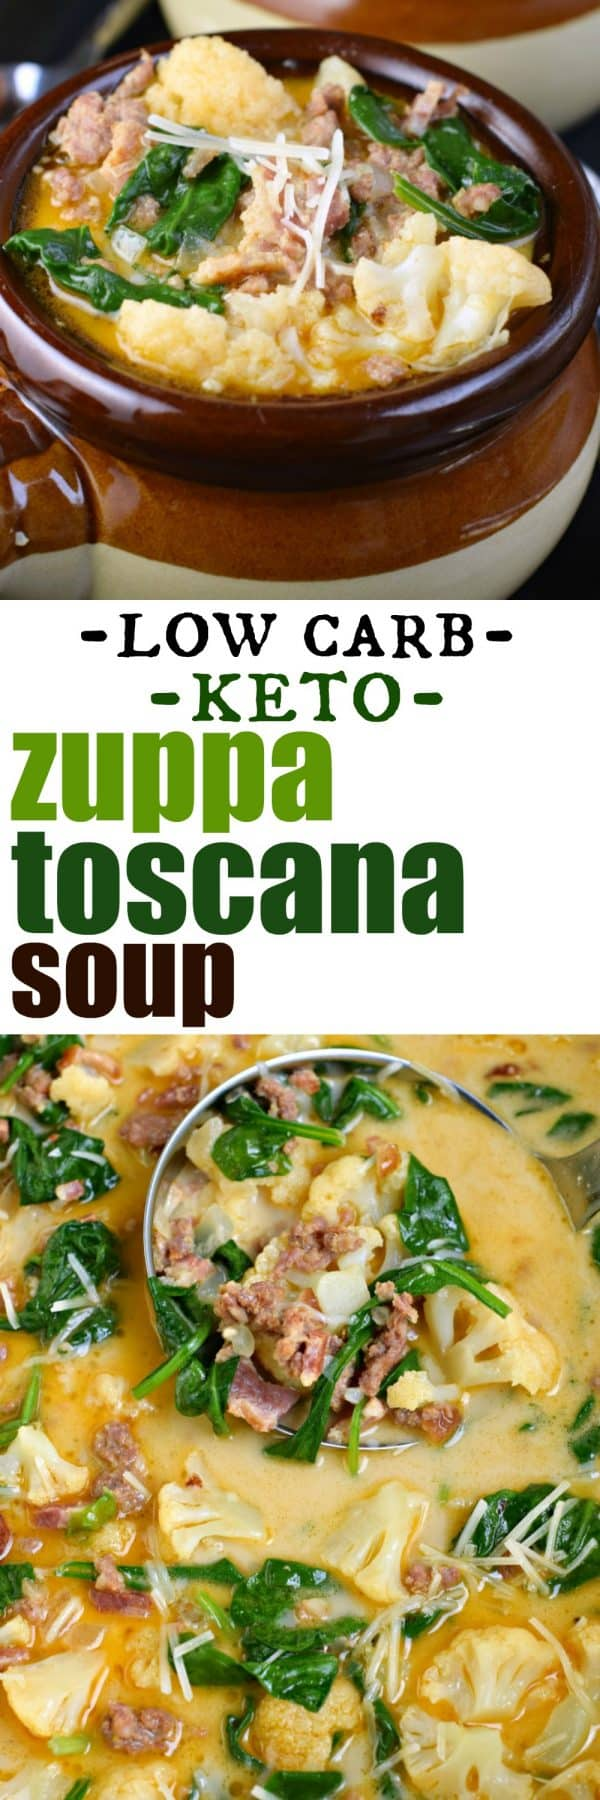 Easy Low Carb Keto Zuppa Toscana Soup Recipe